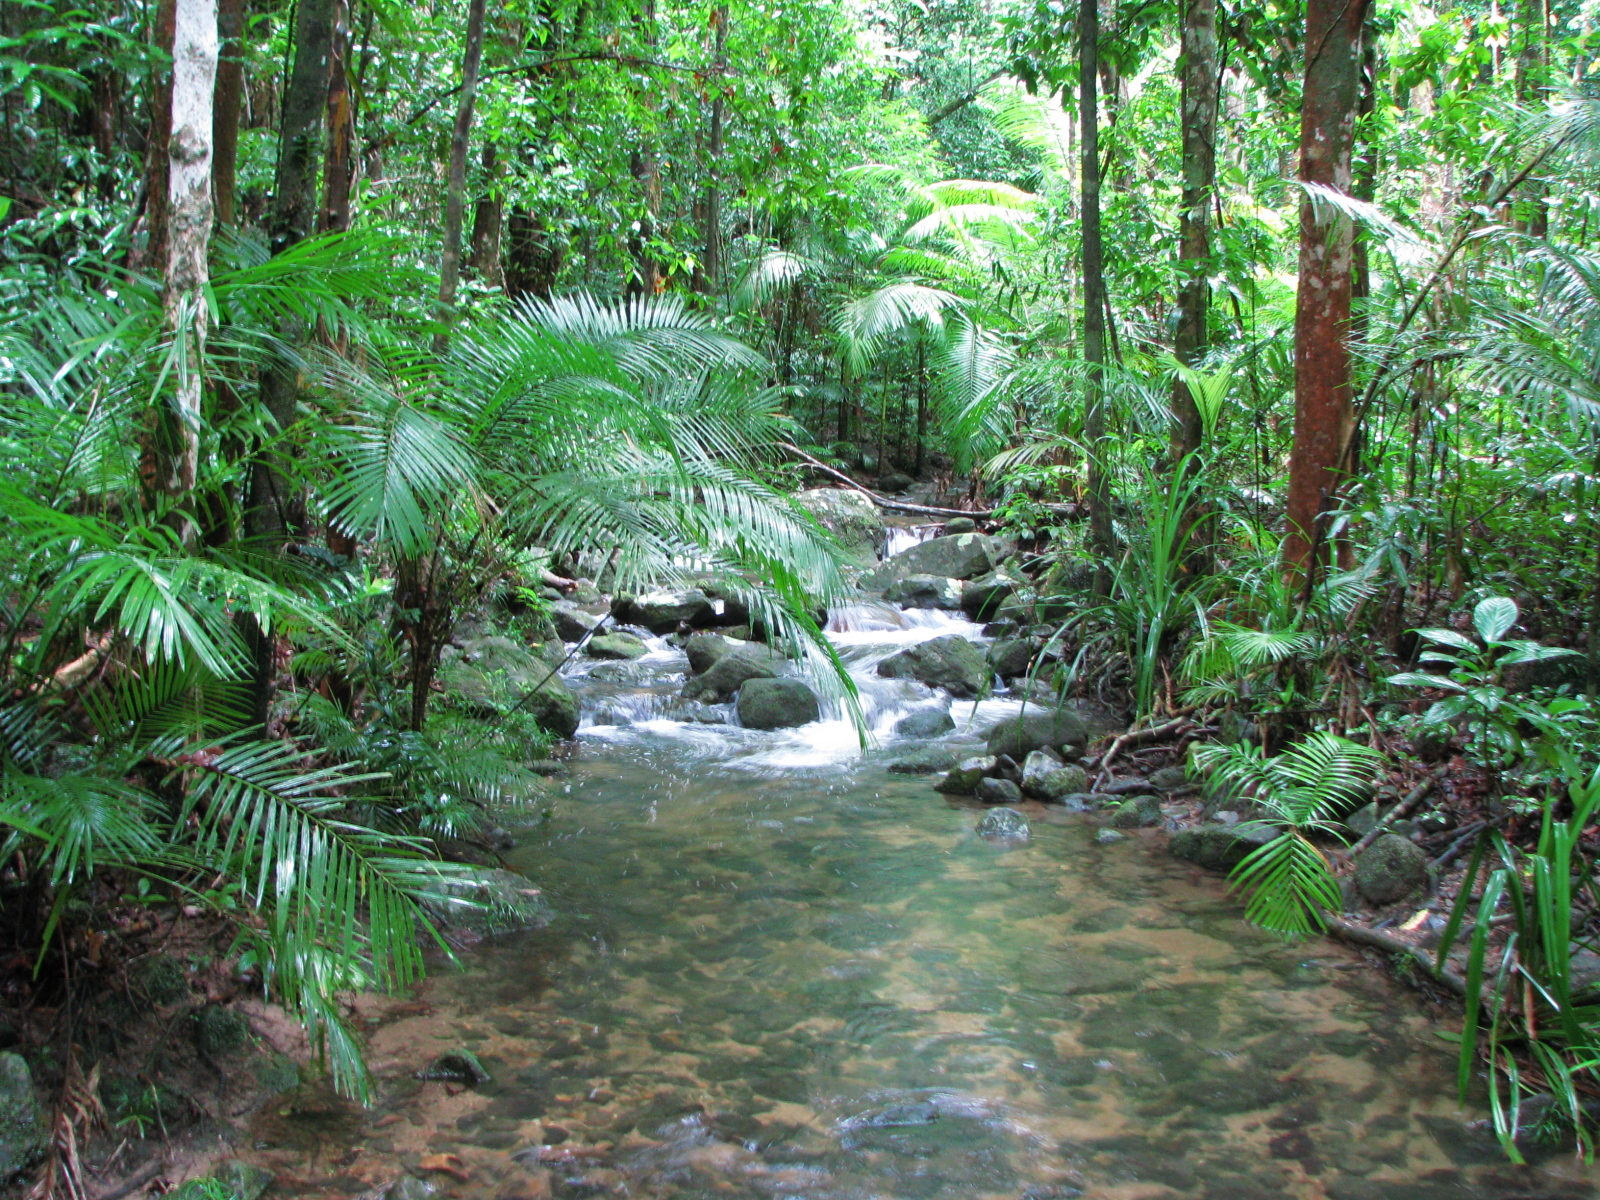 Tributary of Mossman River, in Mossman Gorge